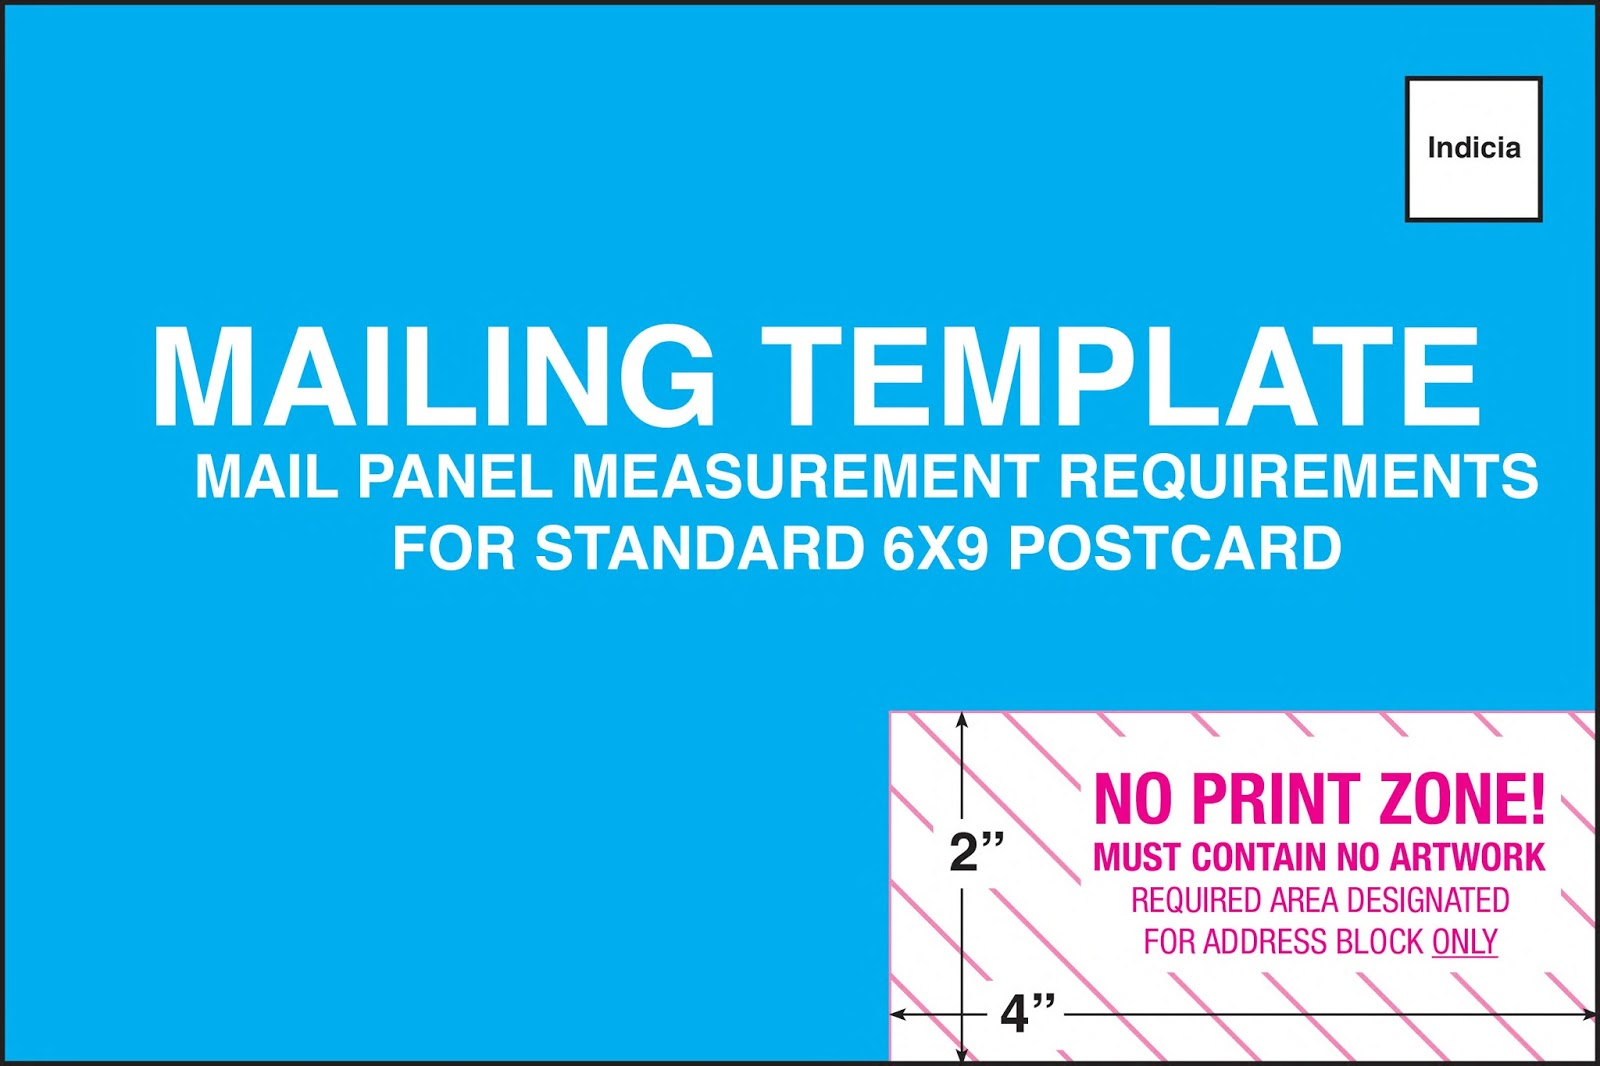 design a postcard, business postcards templates, 6x9 postcard mailer template, postcard mailer template, 6x9 postcard template, 6x9 postcard template usps, 6x9 postcard template indesign, 6x9 postcard template .ai, free 6x9 postcard template, 9x6 postcard, postage cost for 6x9 postcard, 6x9 postcard regulations, 6 x 9 postcard postage, usps 6x9 postcard template